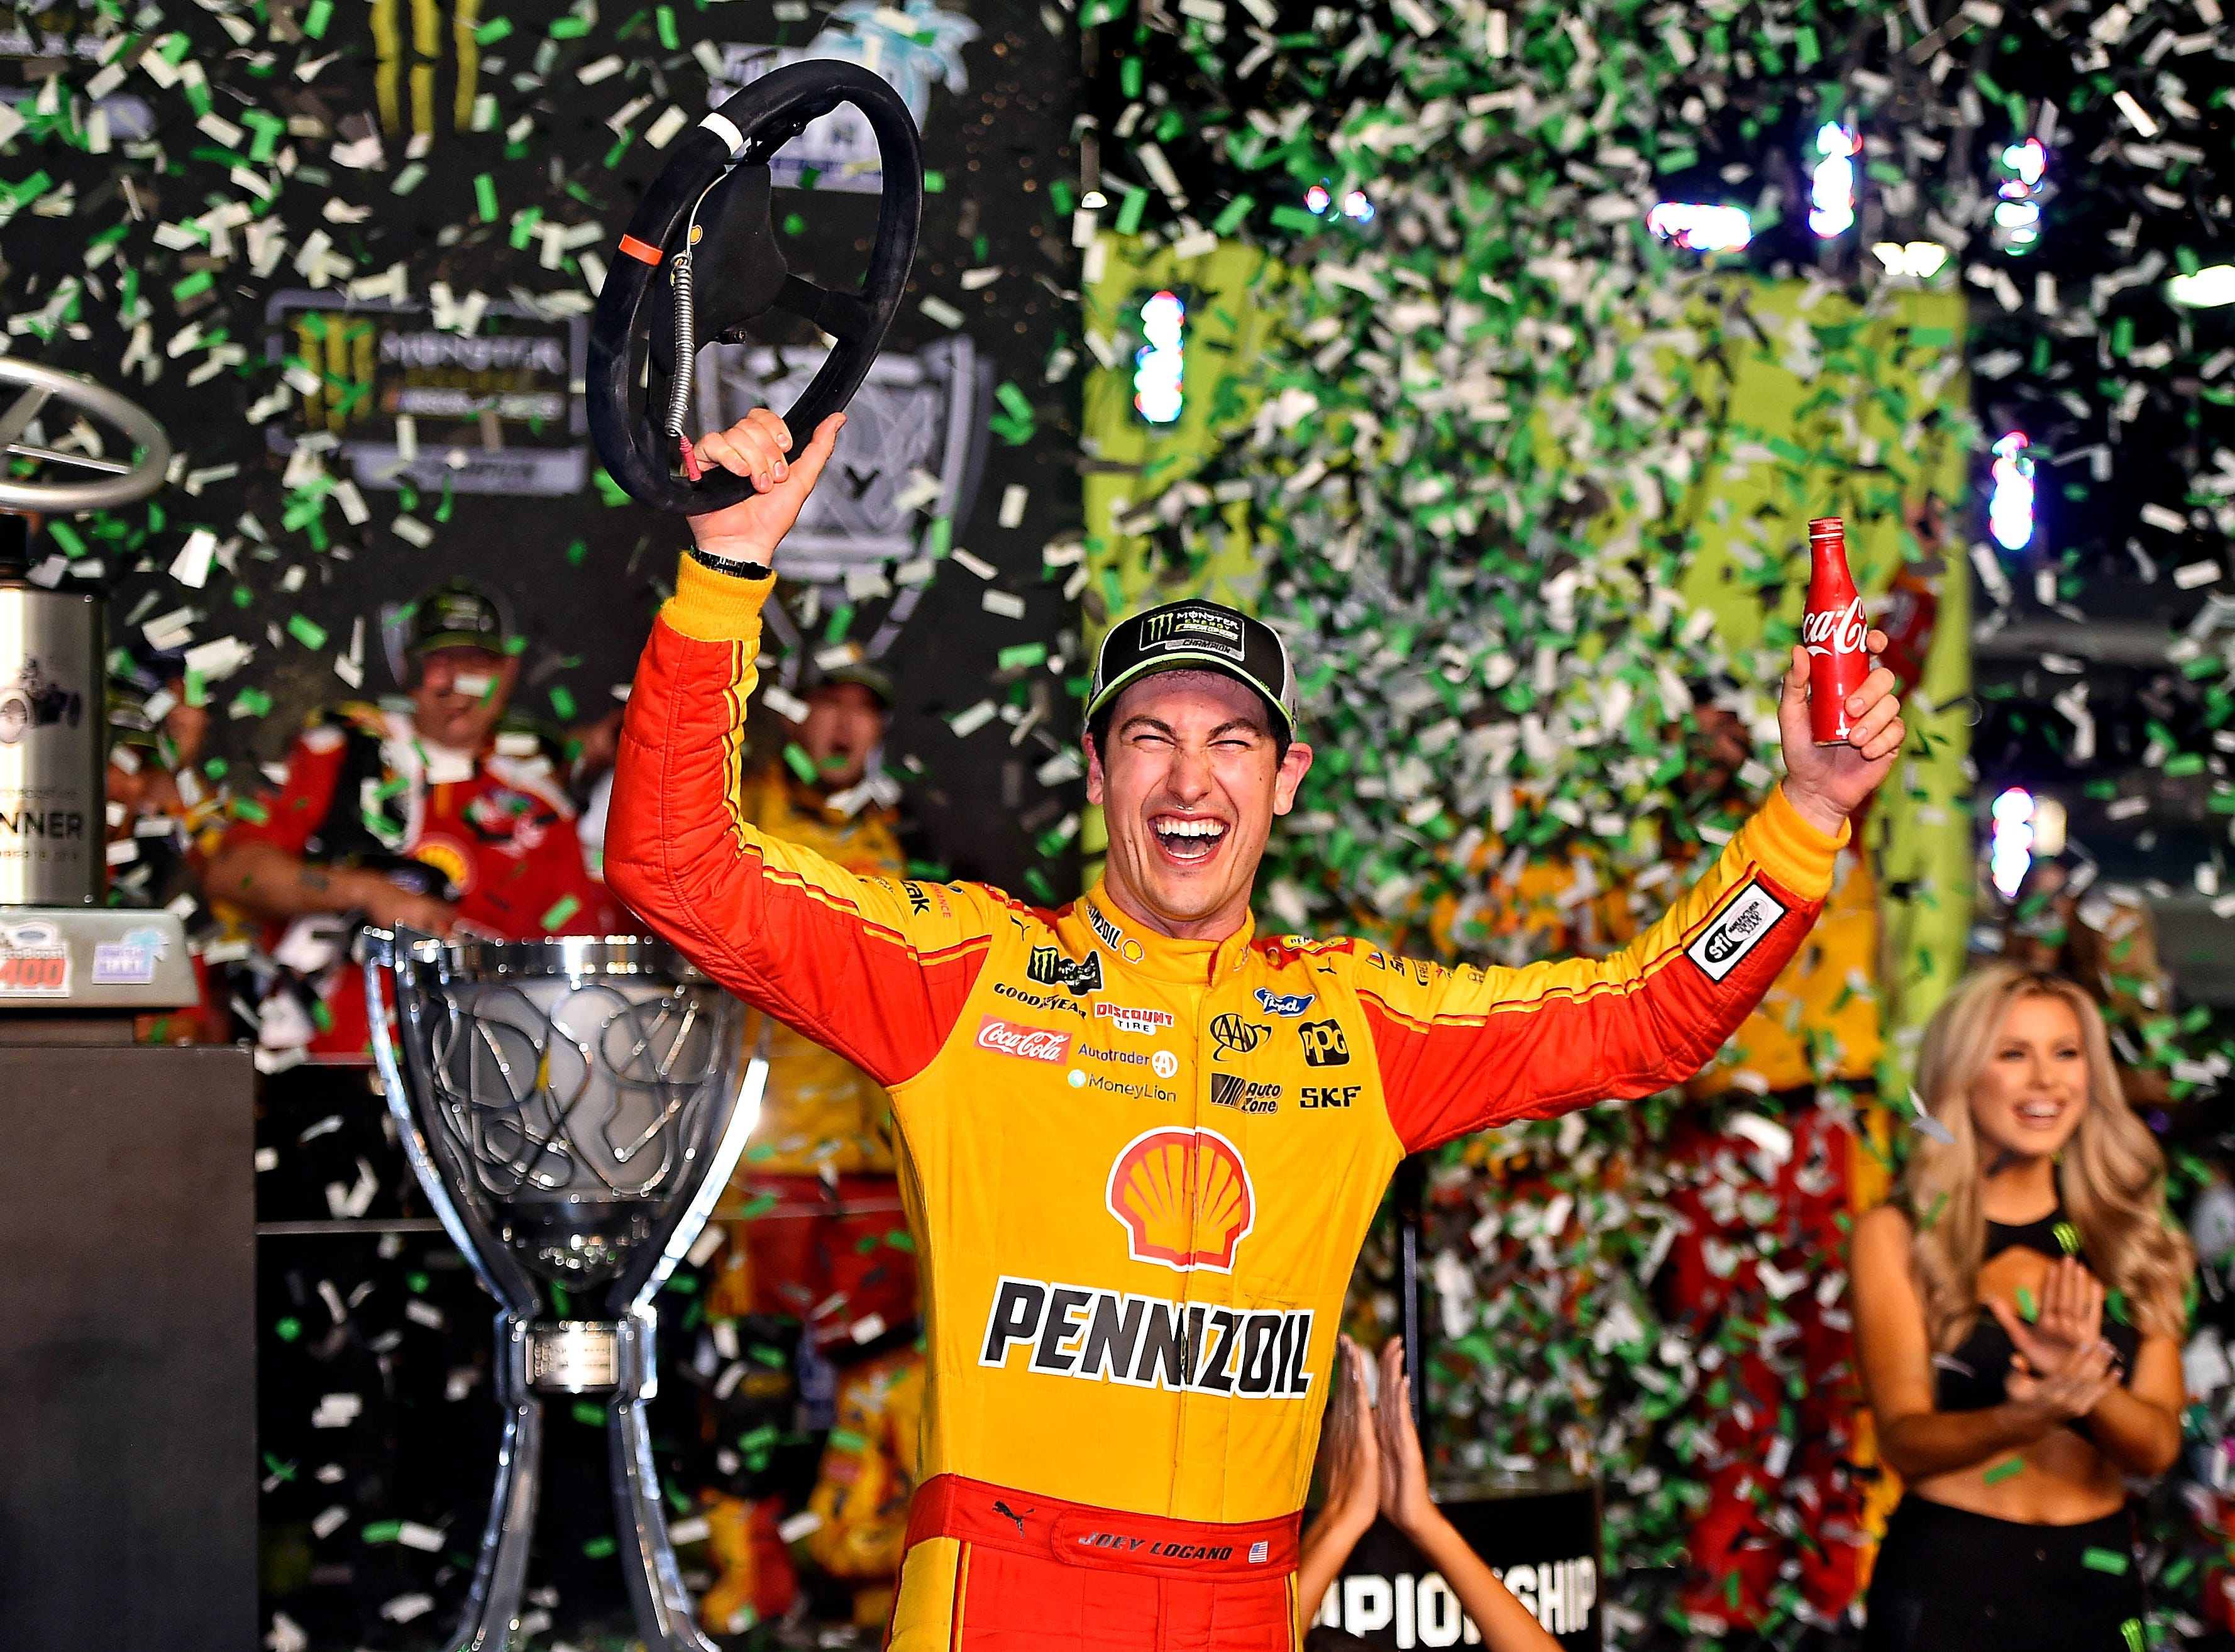 Nov. 18: Joey Logano celebrates after winning the Ford EcoBoost 400 and the NASCAR Cup Series championship at Homestead-Miami Speedway.